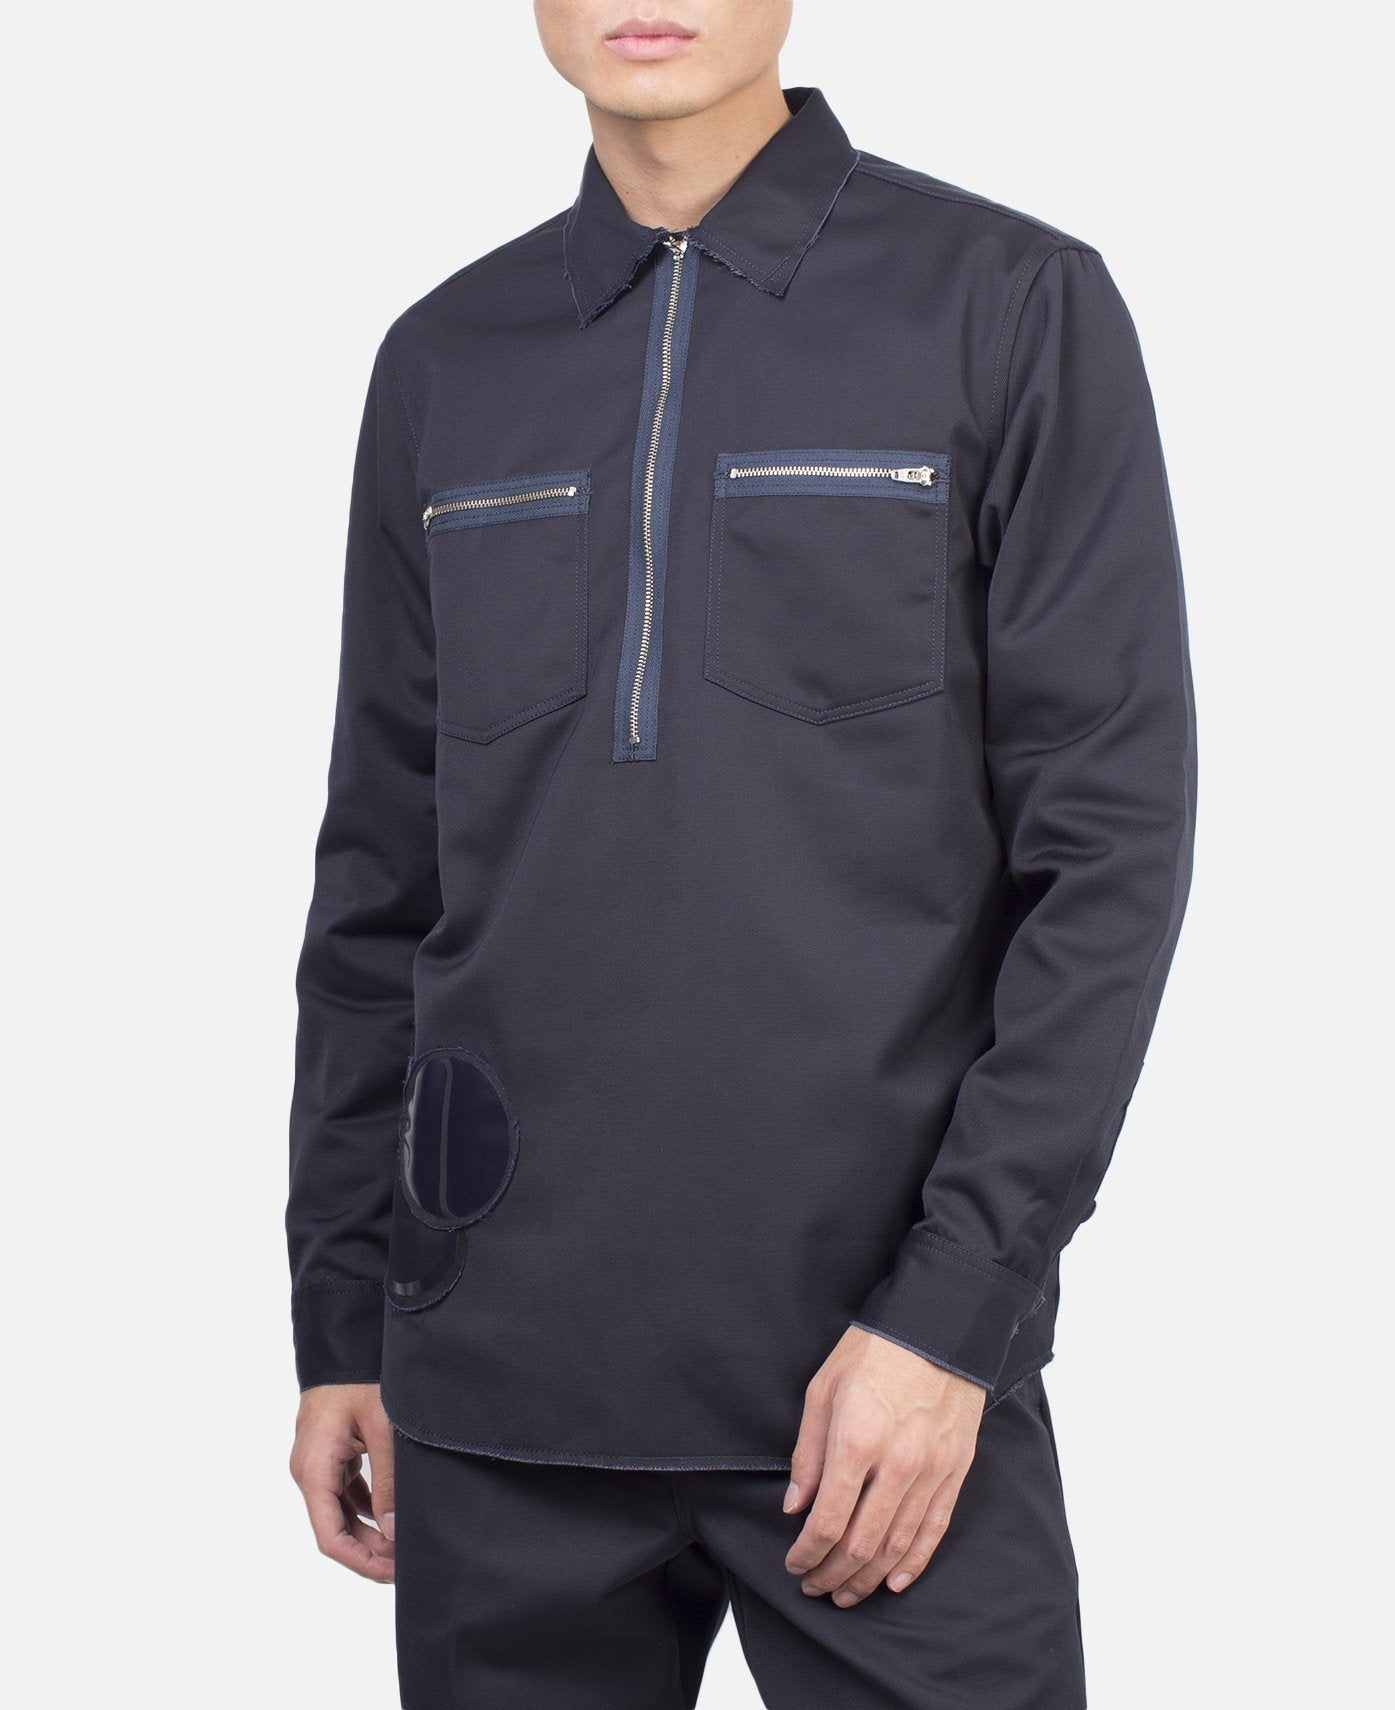 SJ MINUTE MAN ZIP SHIRT NAVY